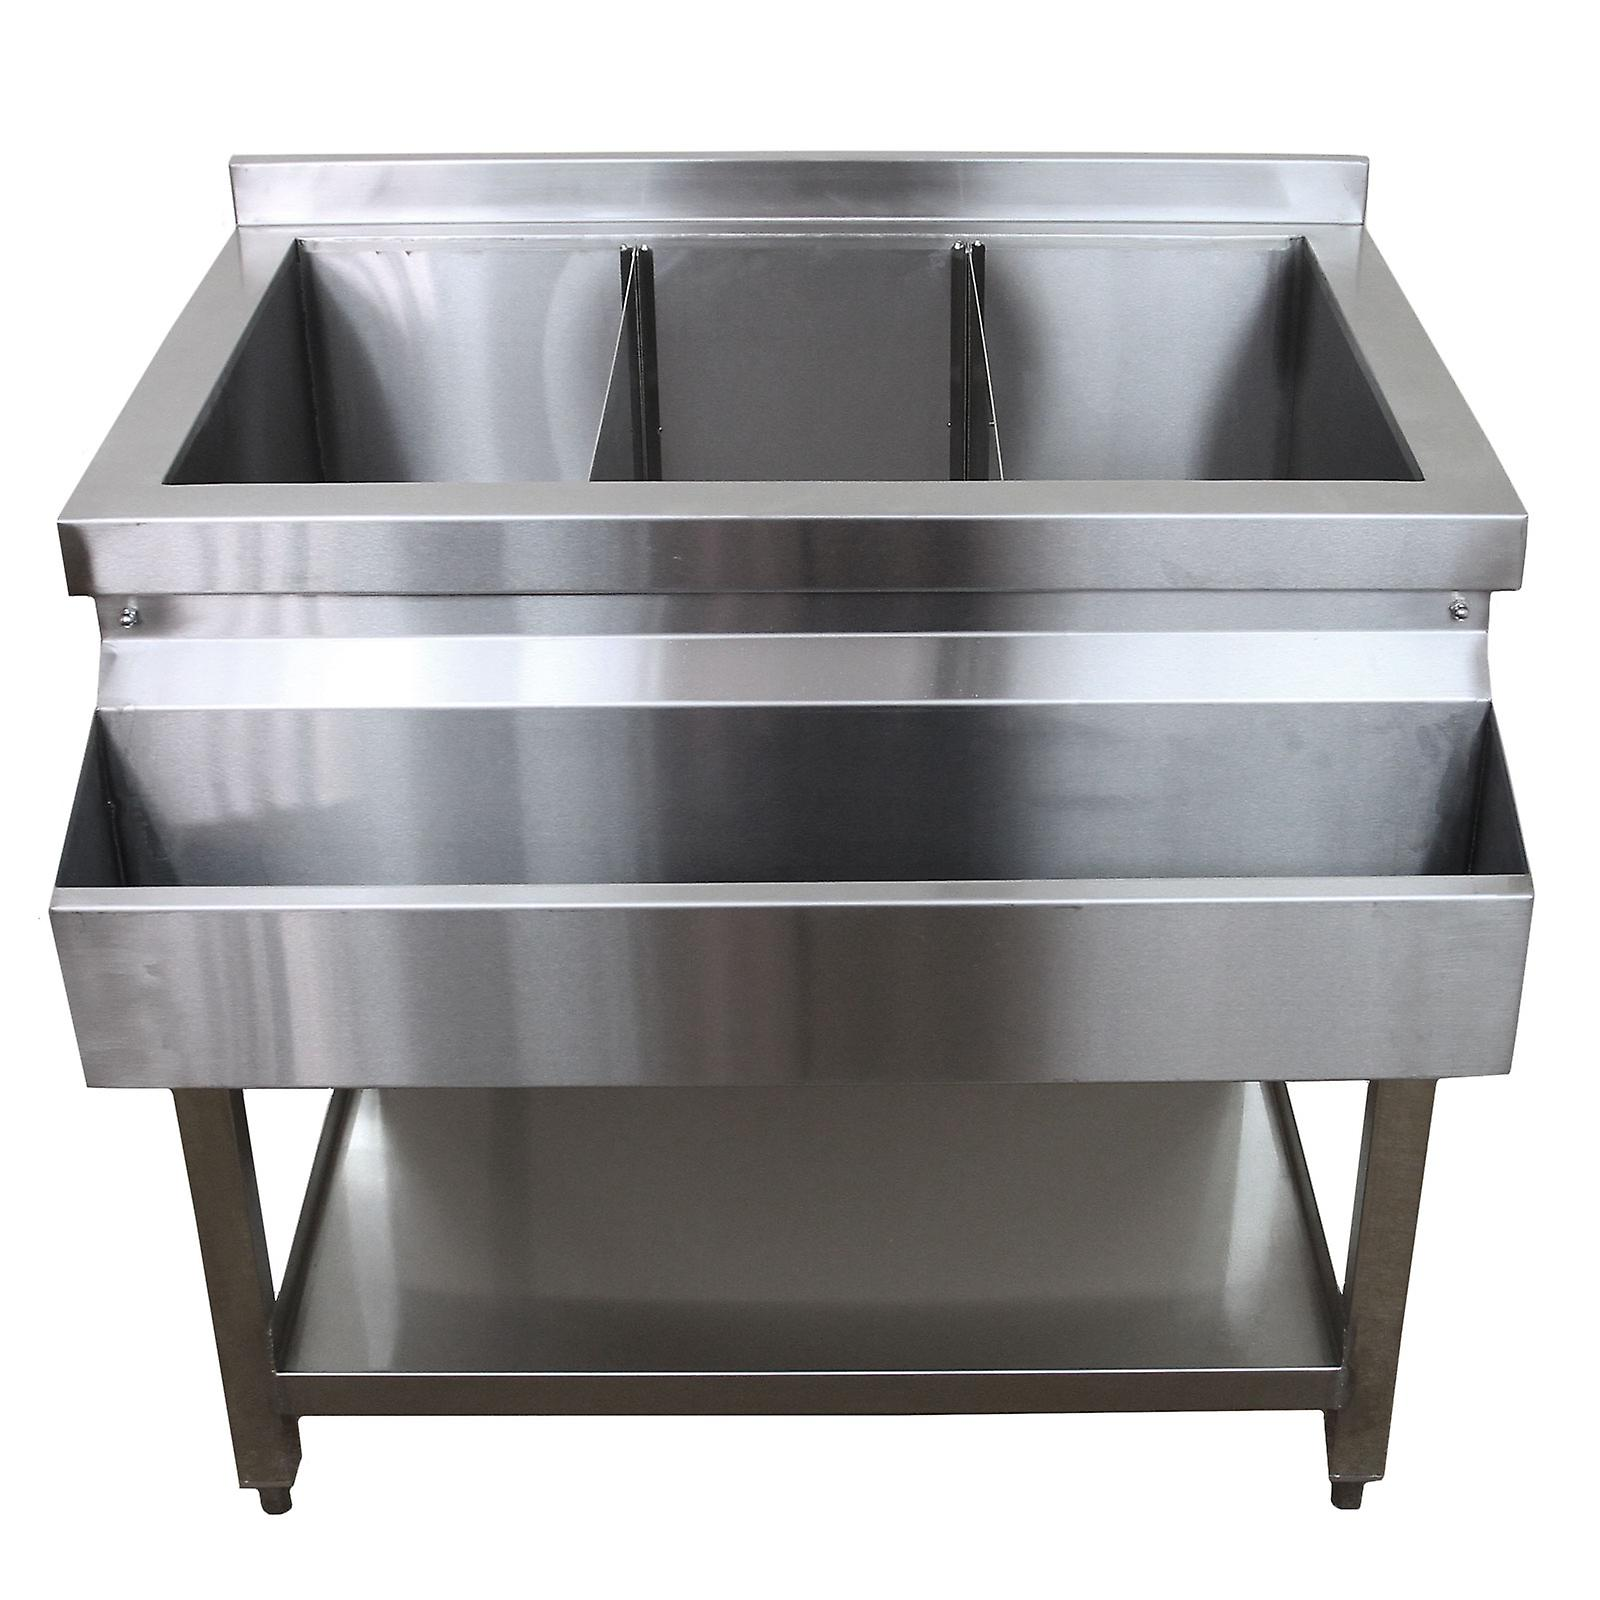 cocktail bar station free standing stainless steel bar sink insulated ice well